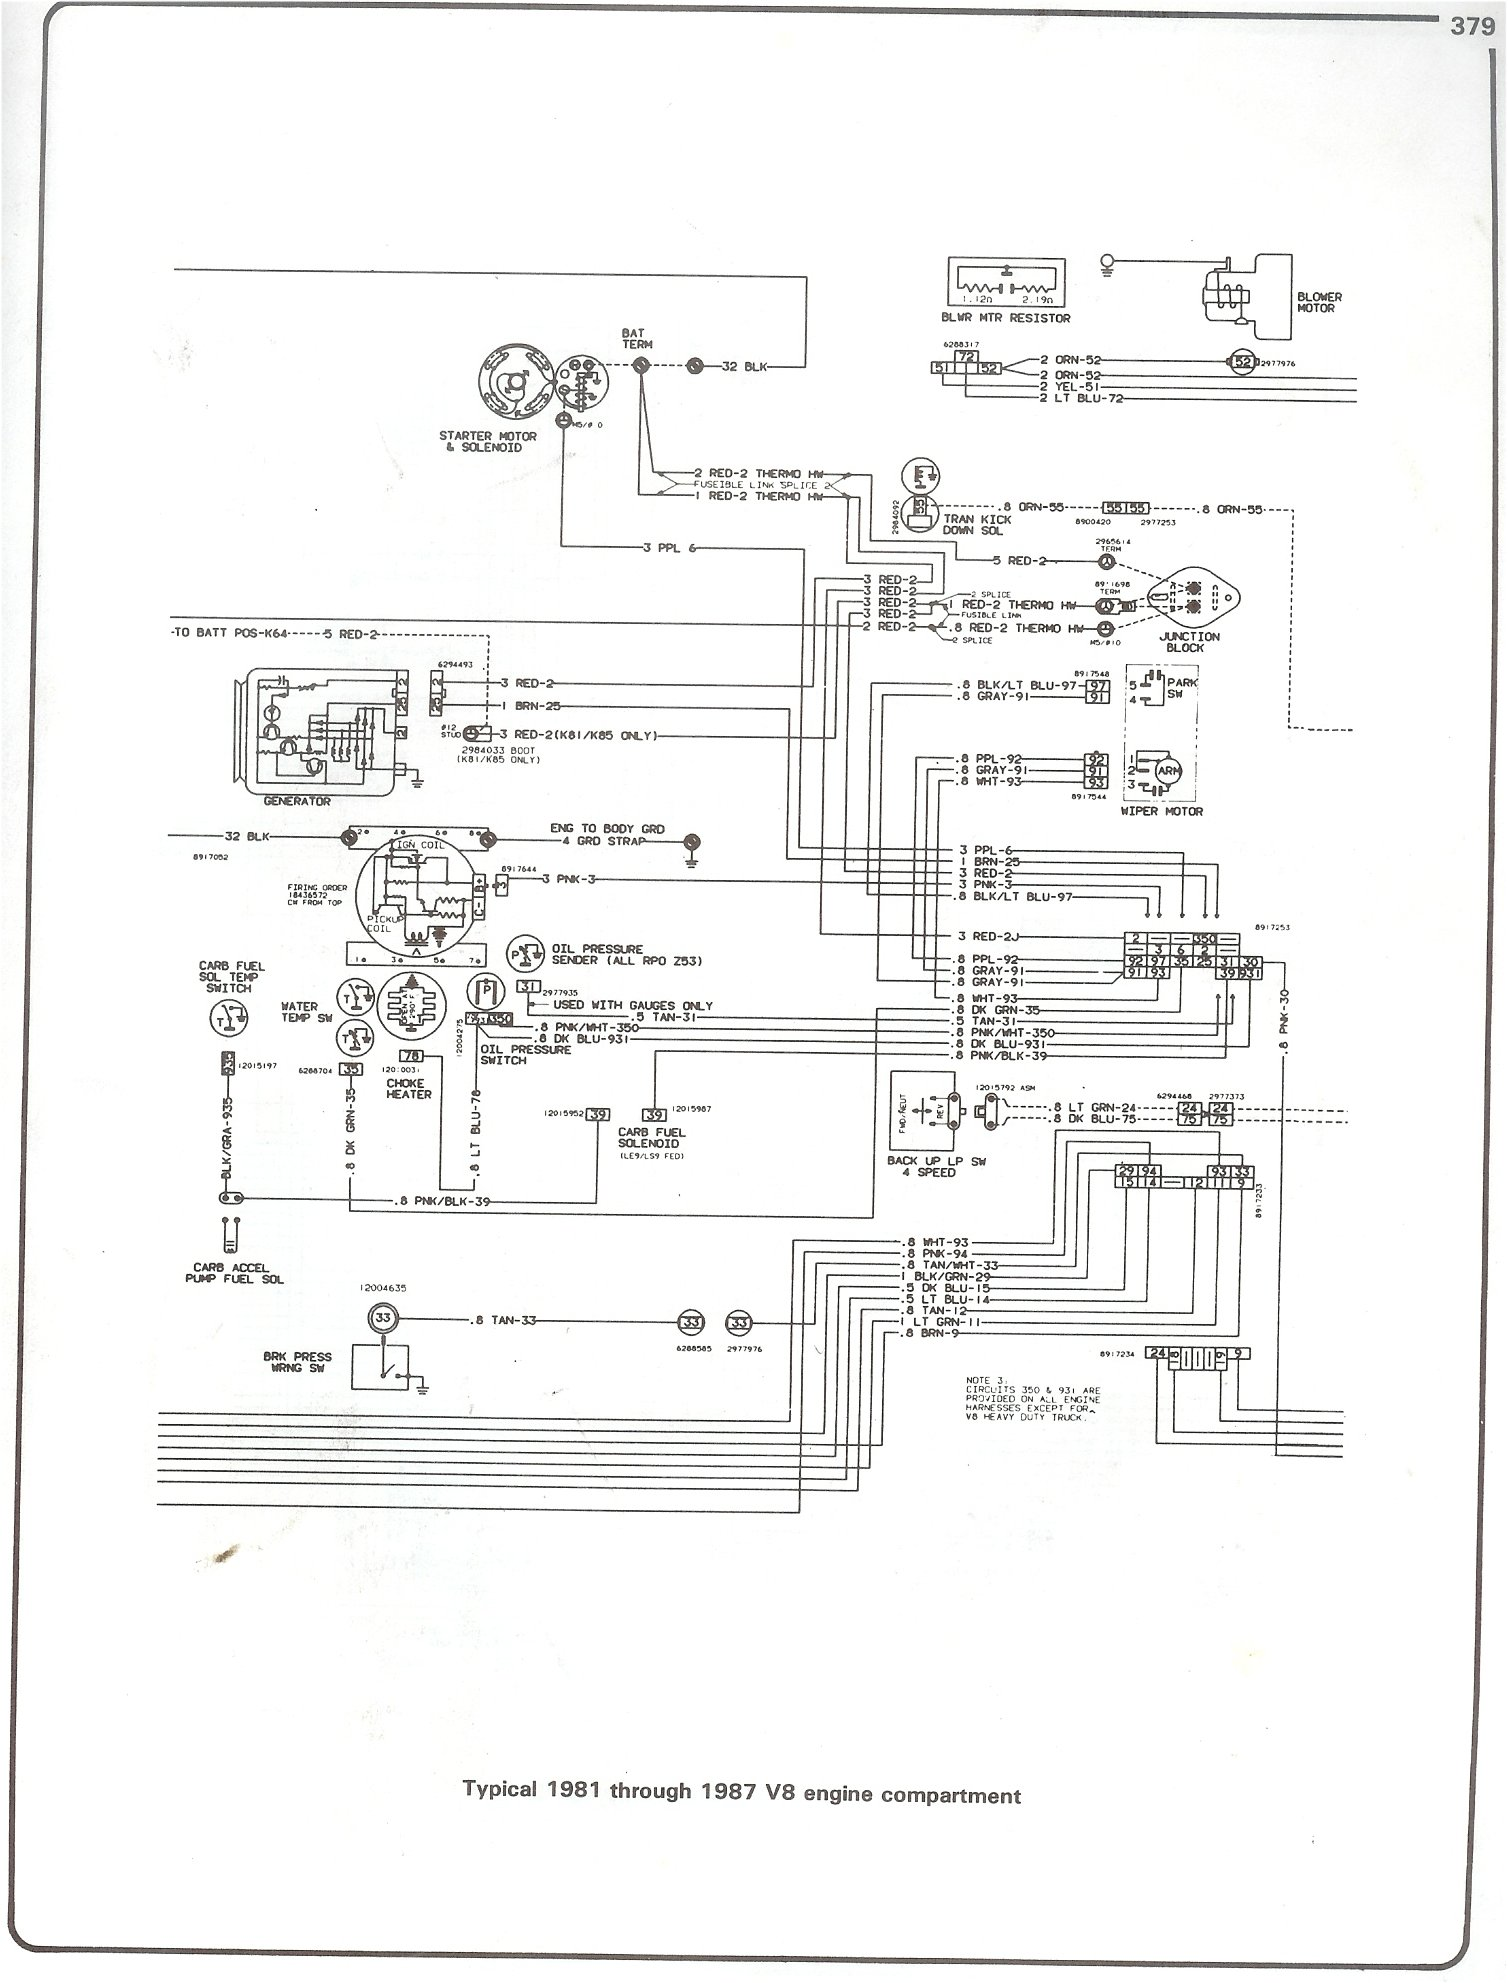 81 87_V8_engine complete 73 87 wiring diagrams 1970 Chevy C10 Fuse Box Diagram at gsmx.co